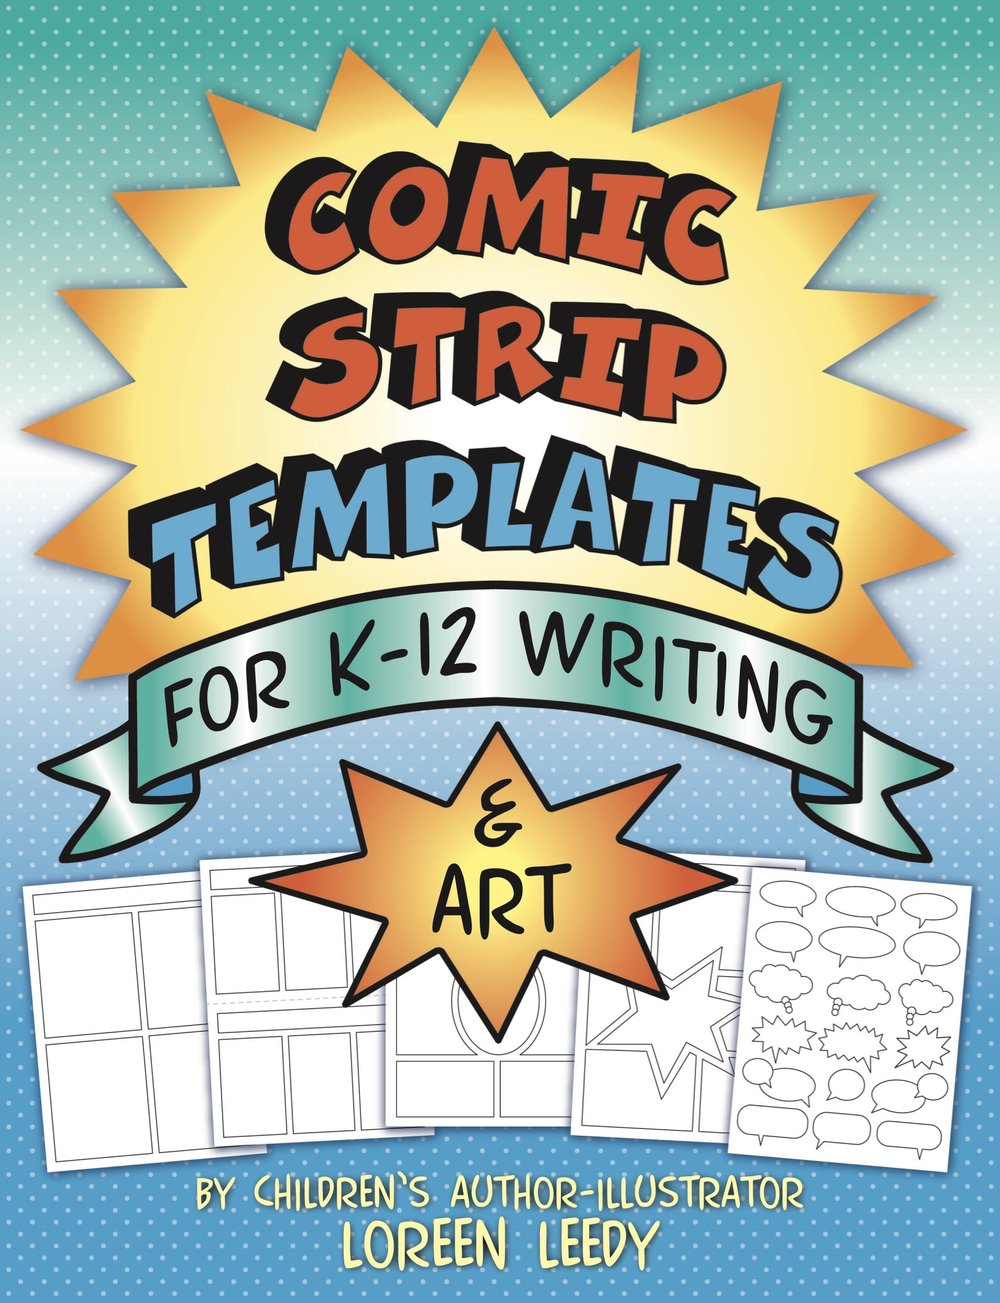 Comic strip templates for Kindergarten through 12th grade writing and art